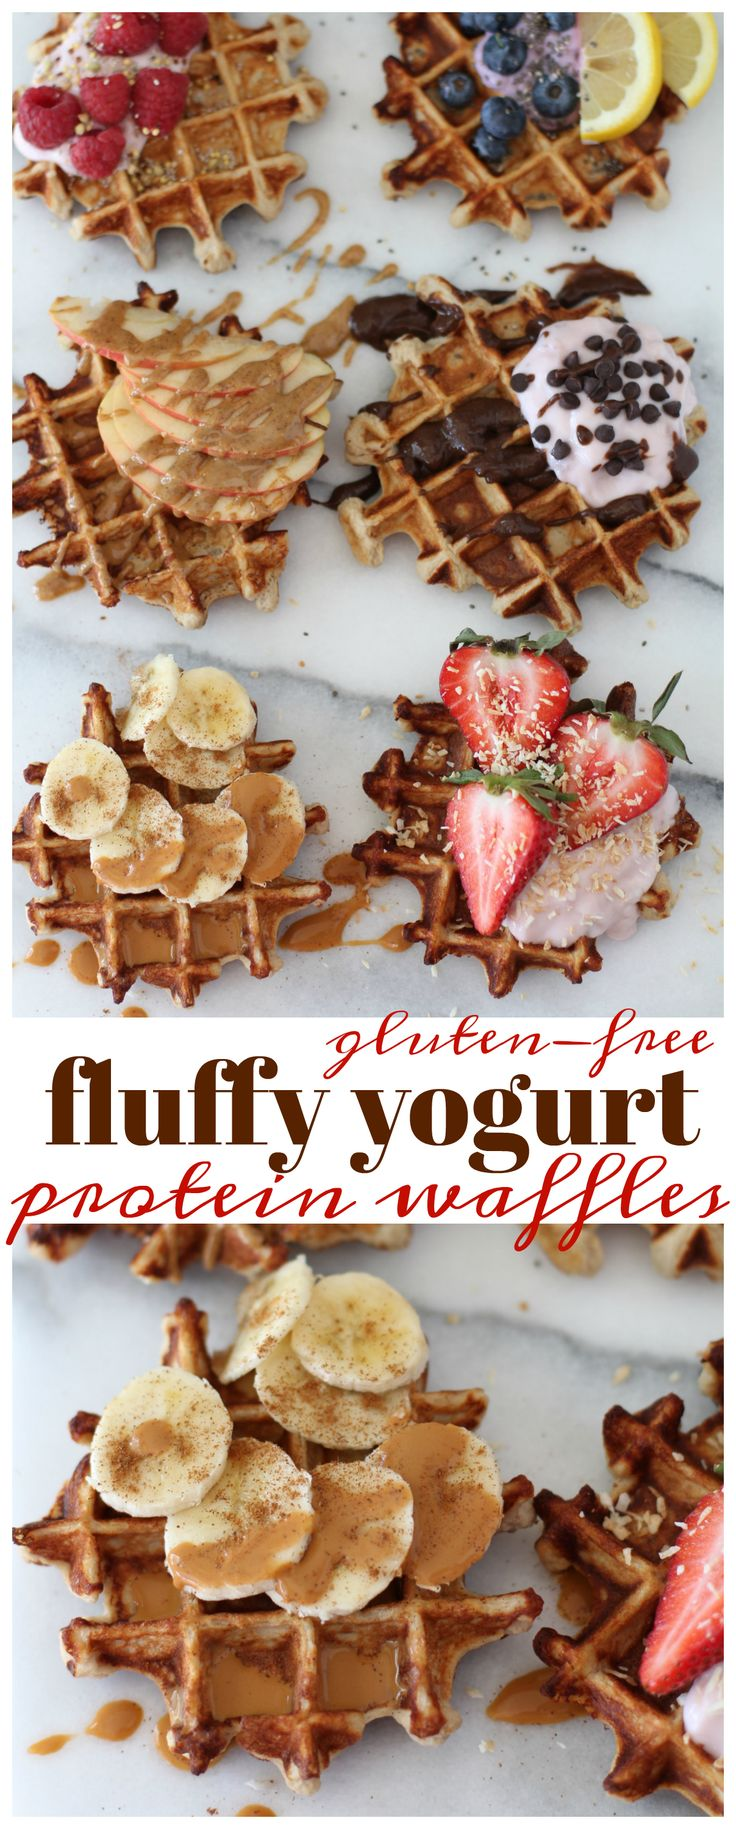 The best-ever fluffy yogurt protein waffles require just 4 ingredients, 10 minutes and 1 bowl. They are perfectly thick, soft, sweet and packed with nutritional benefits. {ad}